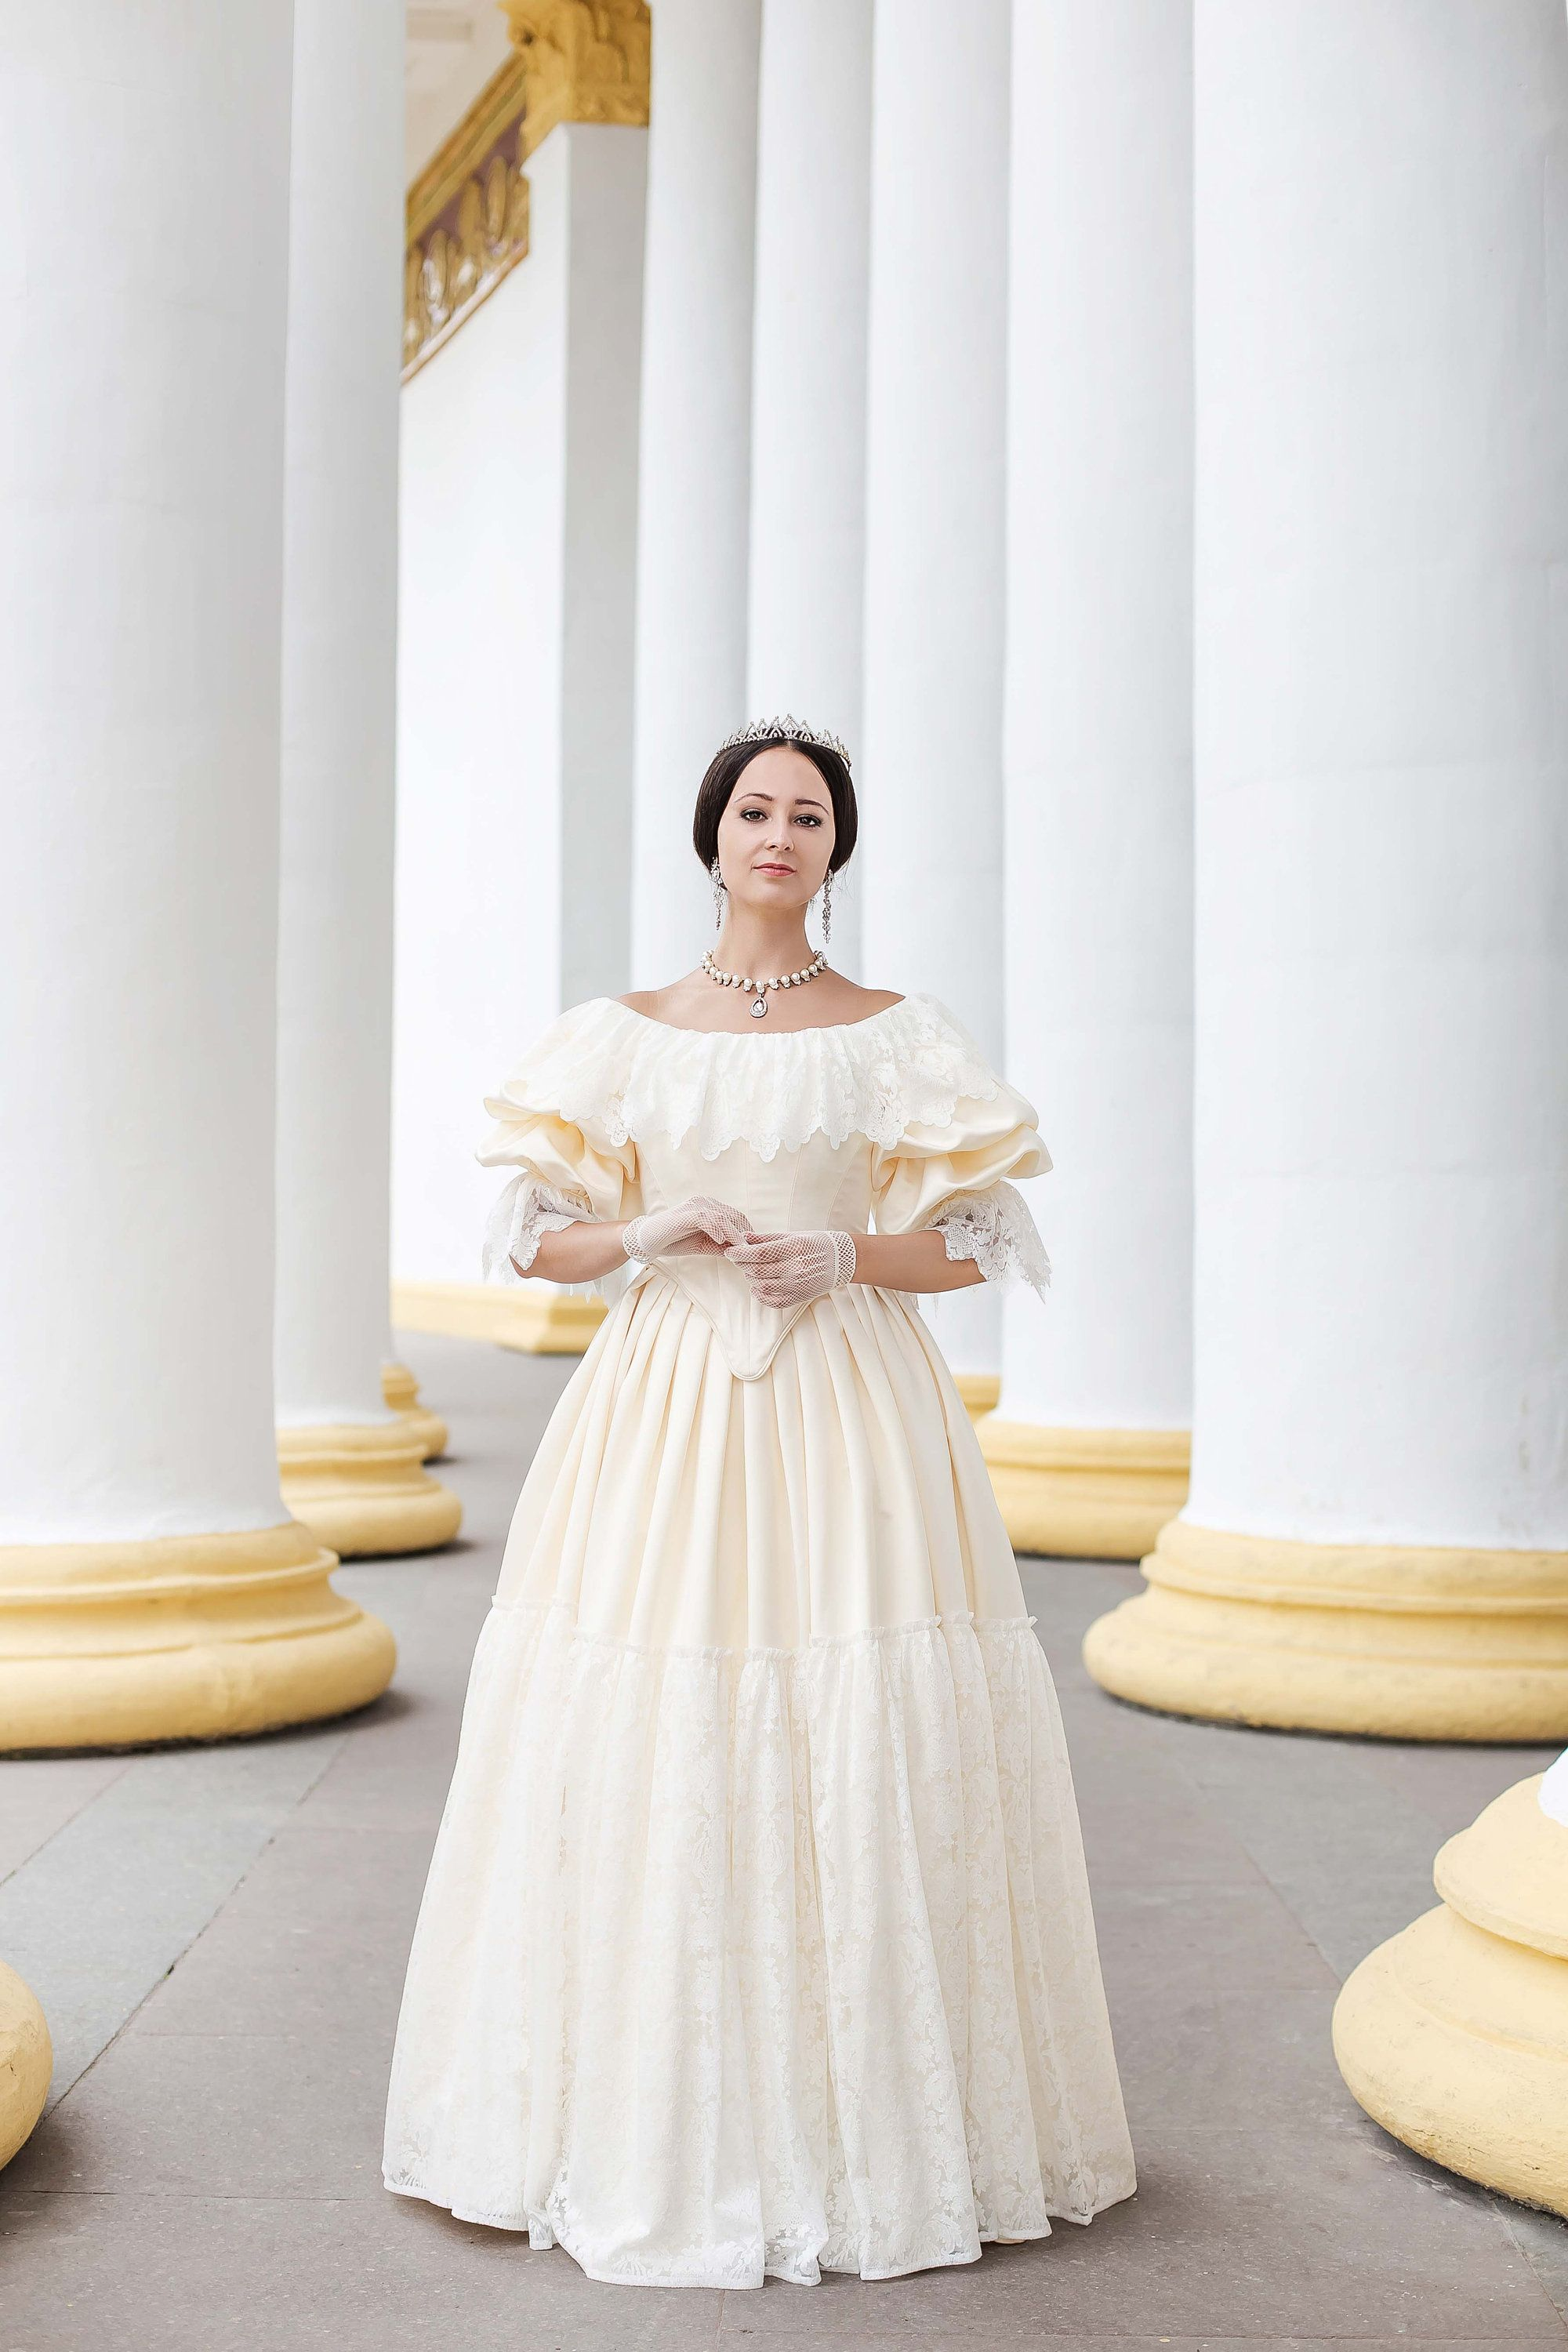 Young Victoria Wedding Dress 1840s Wedding Gown Etsy Victoria Wedding Dress Queen Victoria Wedding Dress Queen Victoria Dress [ 3000 x 2000 Pixel ]